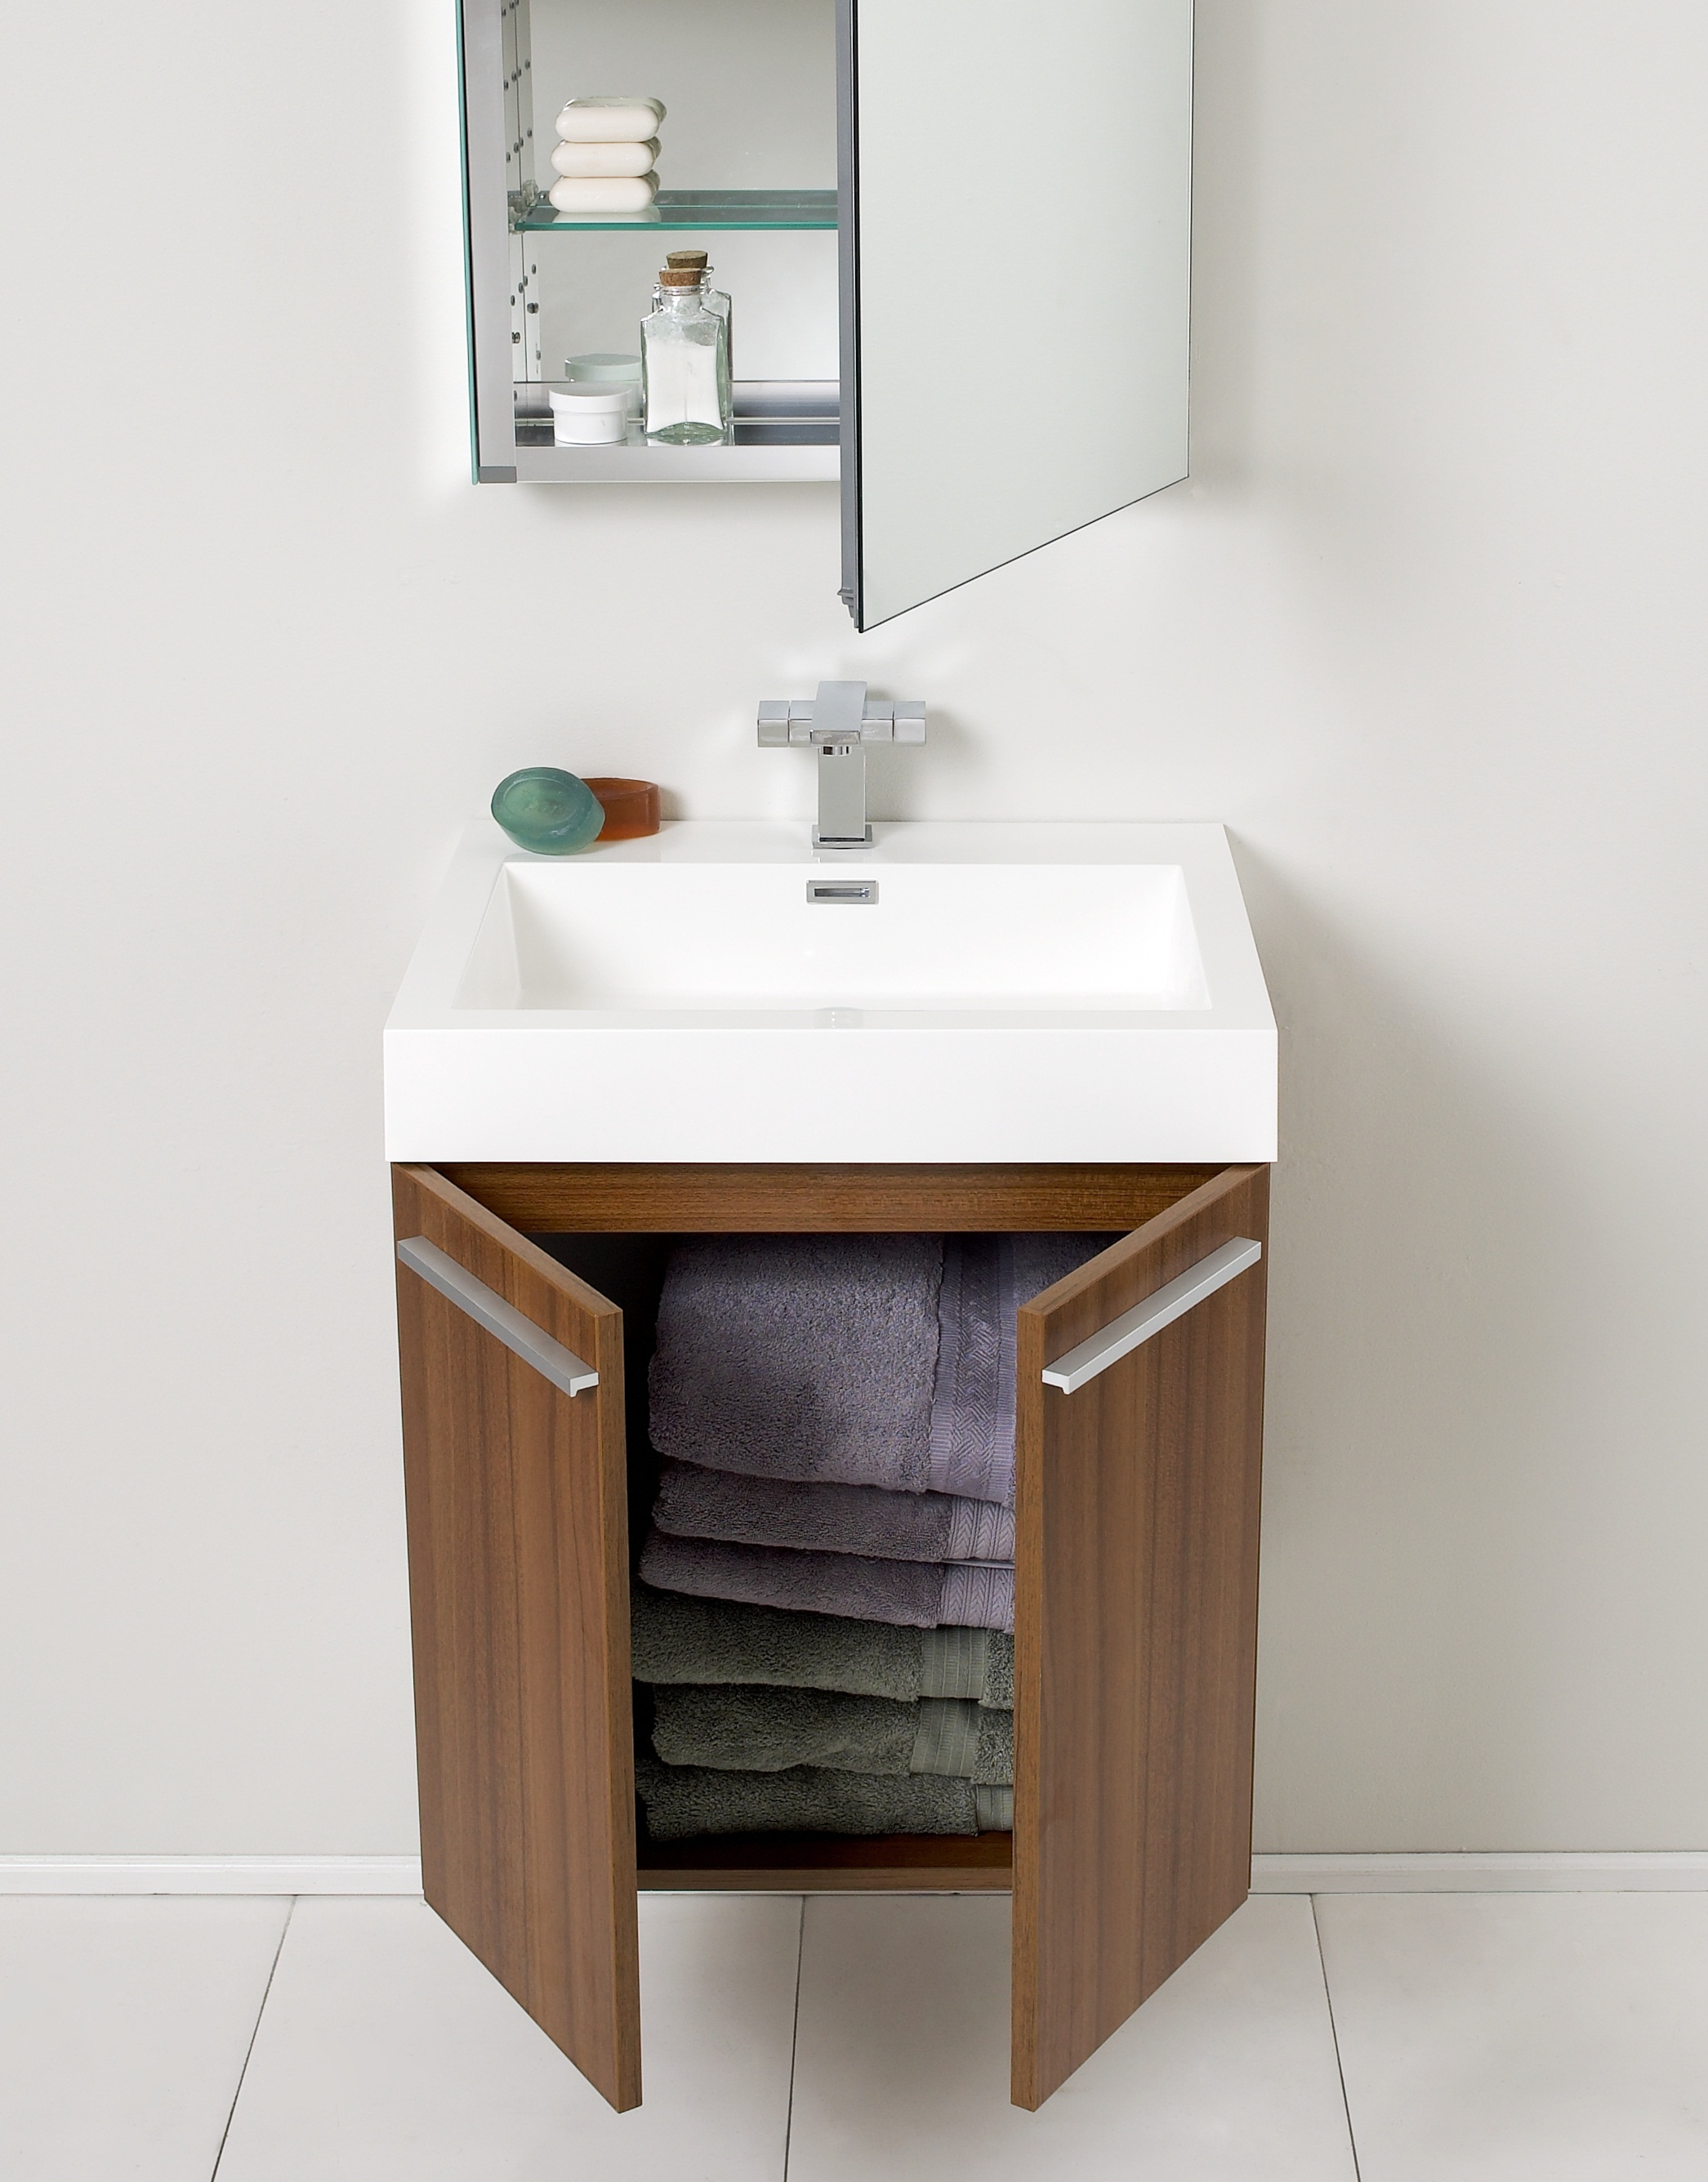 small bathroom vanity cabinets - Bathroom Cabinets Small Spaces